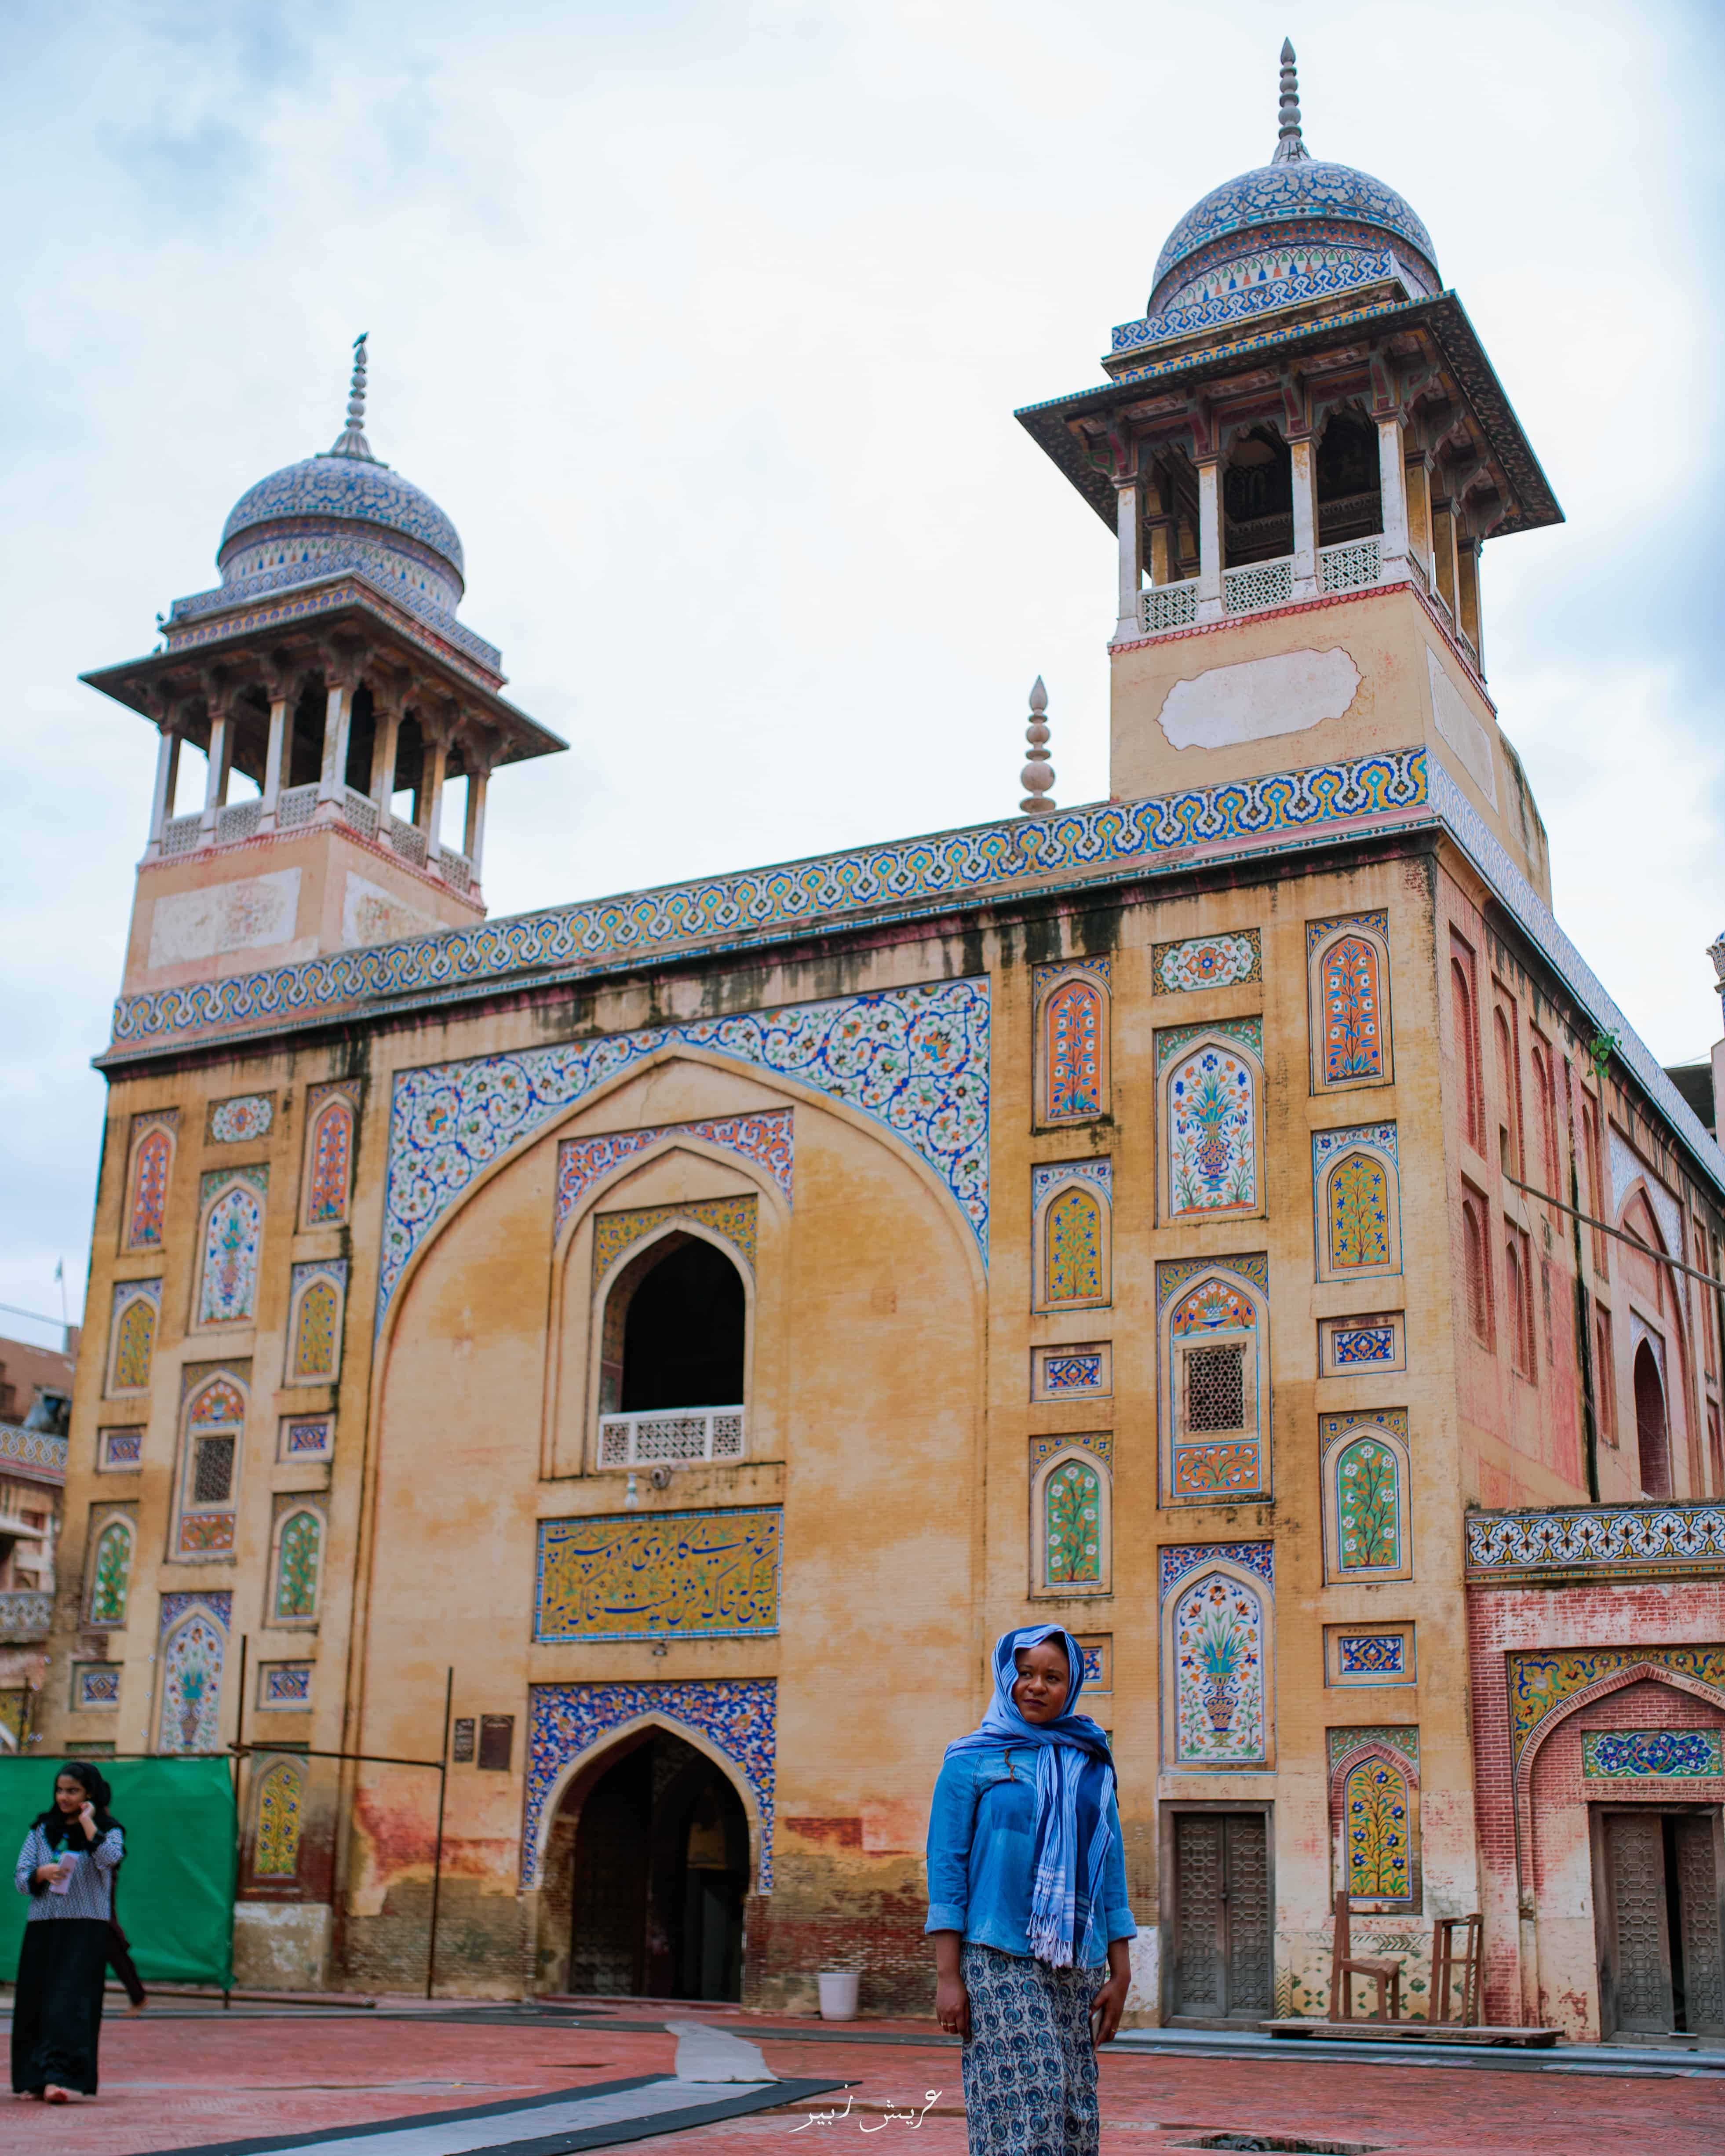 Front view of the Wazir Khan mosque in Lahore Pakistan